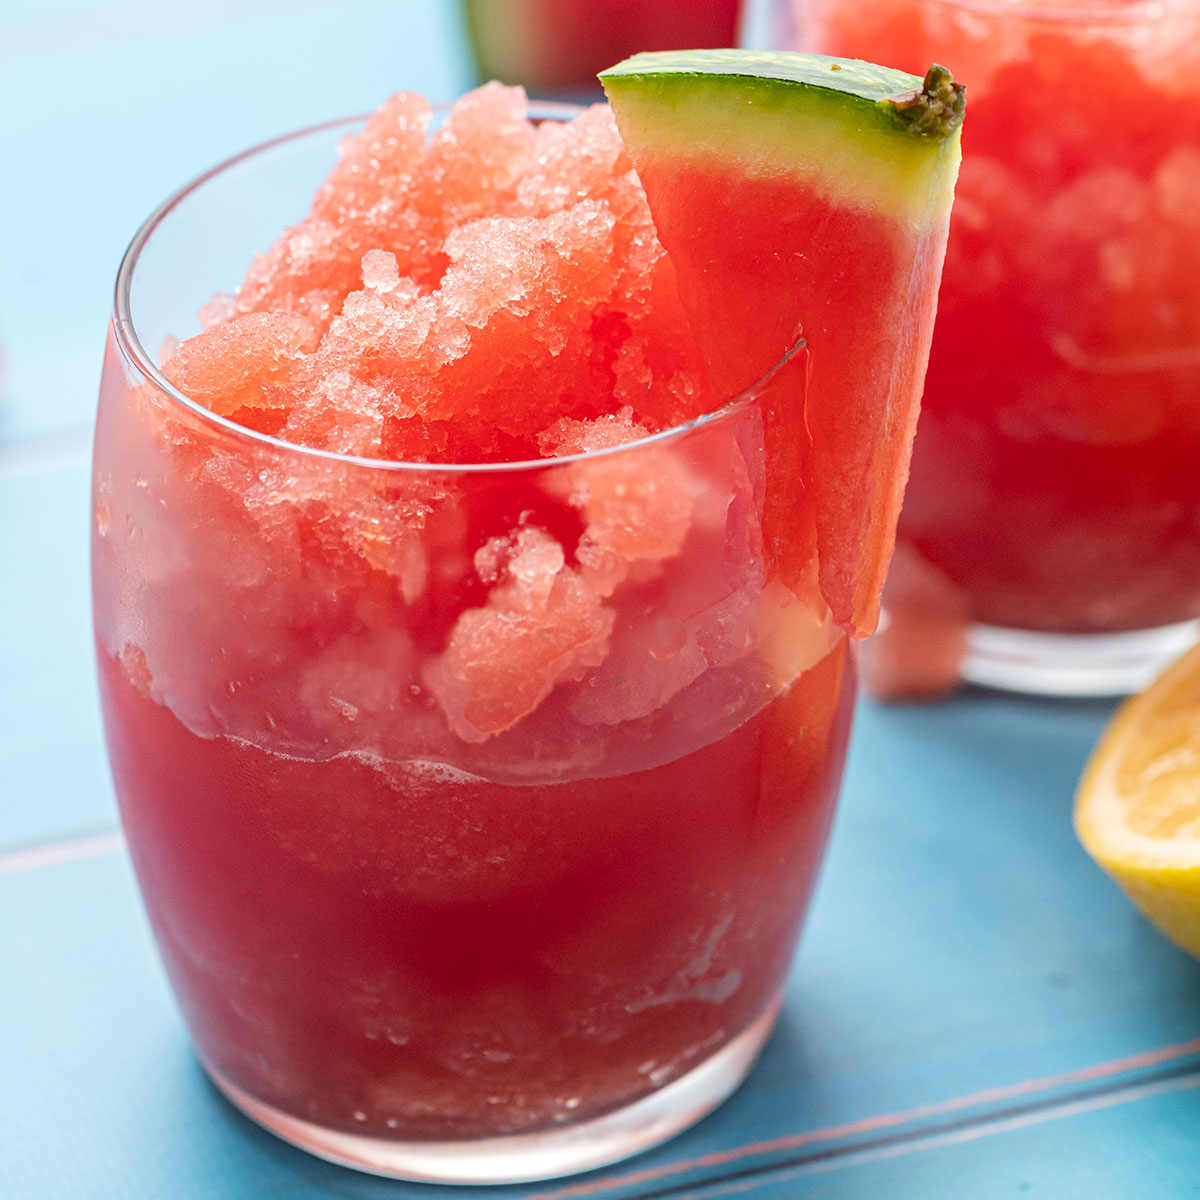 Glass full of watermelon slushy with a wedge of watermelon on the rim